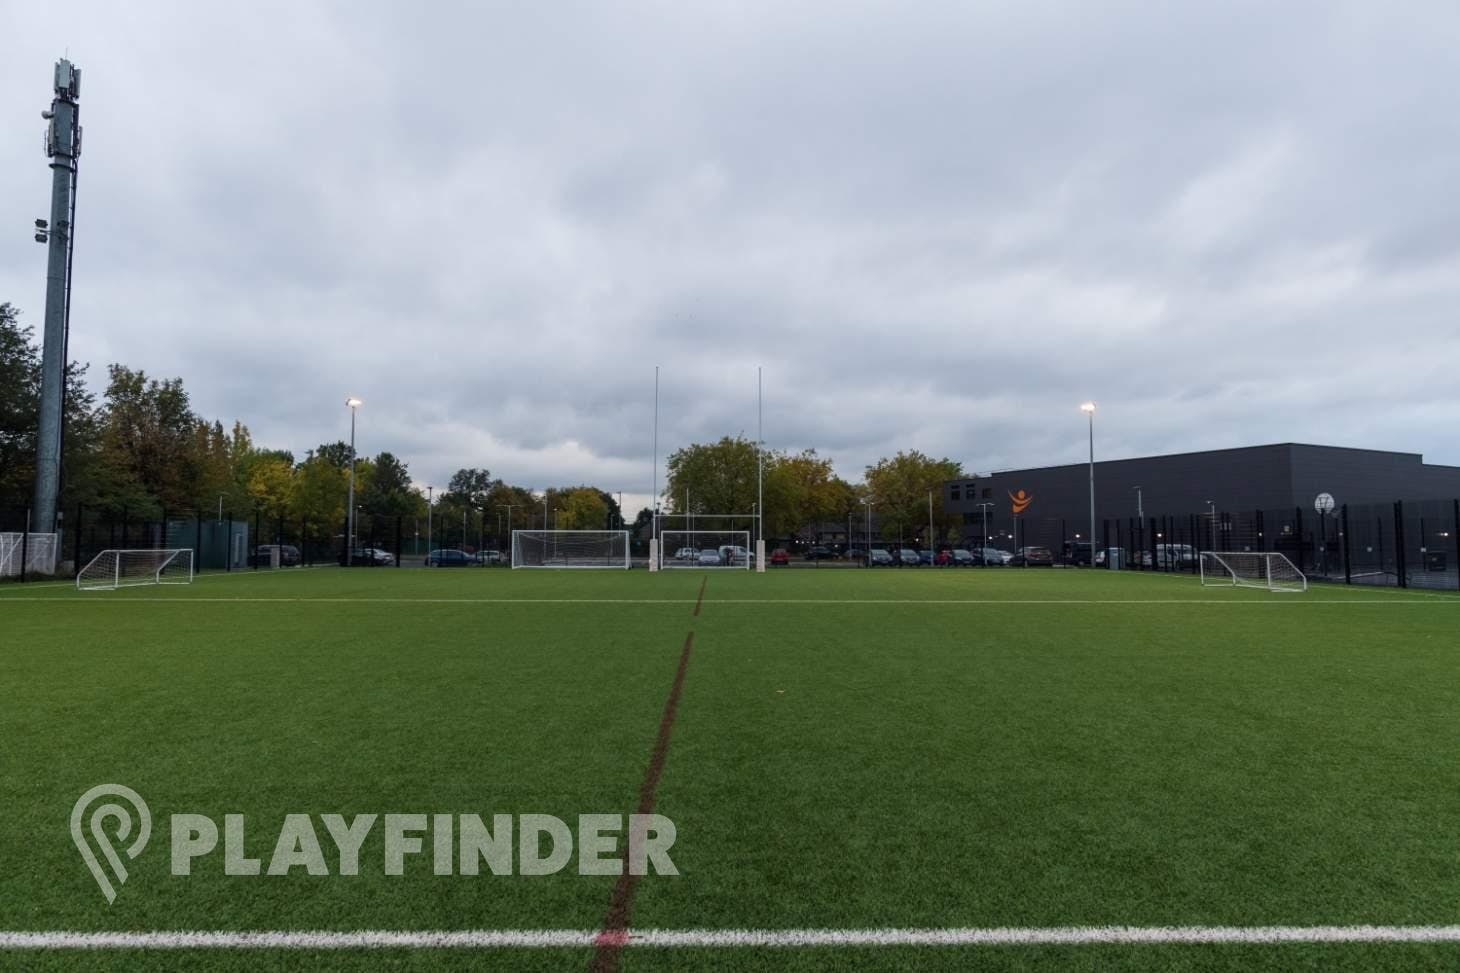 Manchester Enterprise Academy Central 9 a side | 3G Astroturf football pitch